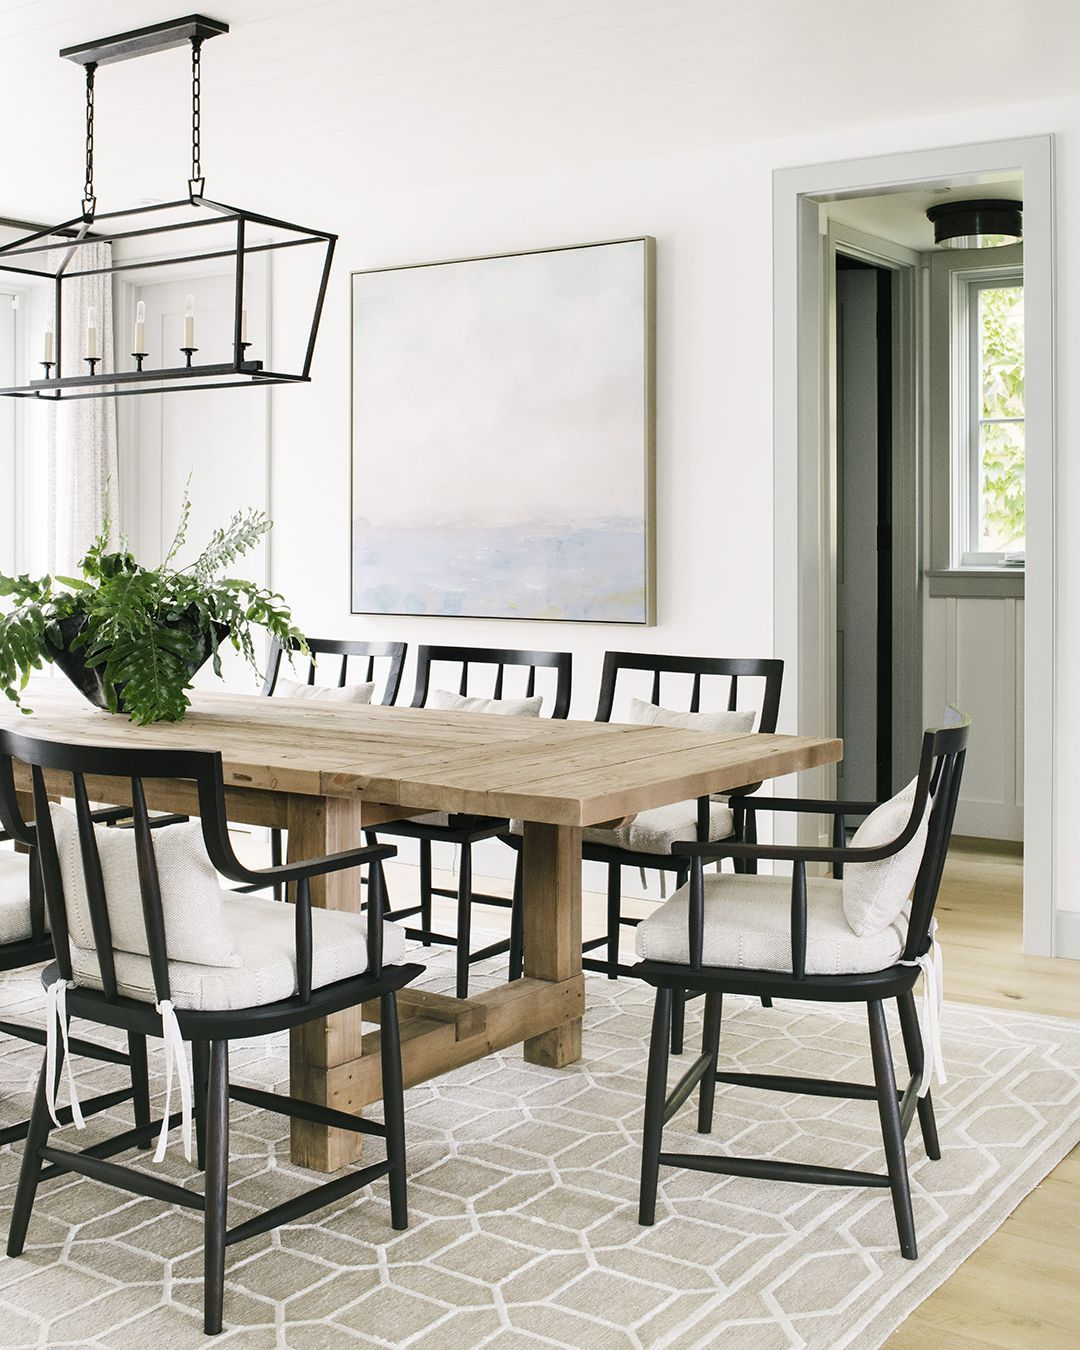 Casual Modern Dining Room: 31 Dining Room Decor Ideas For Many Styles (Formal, Casual